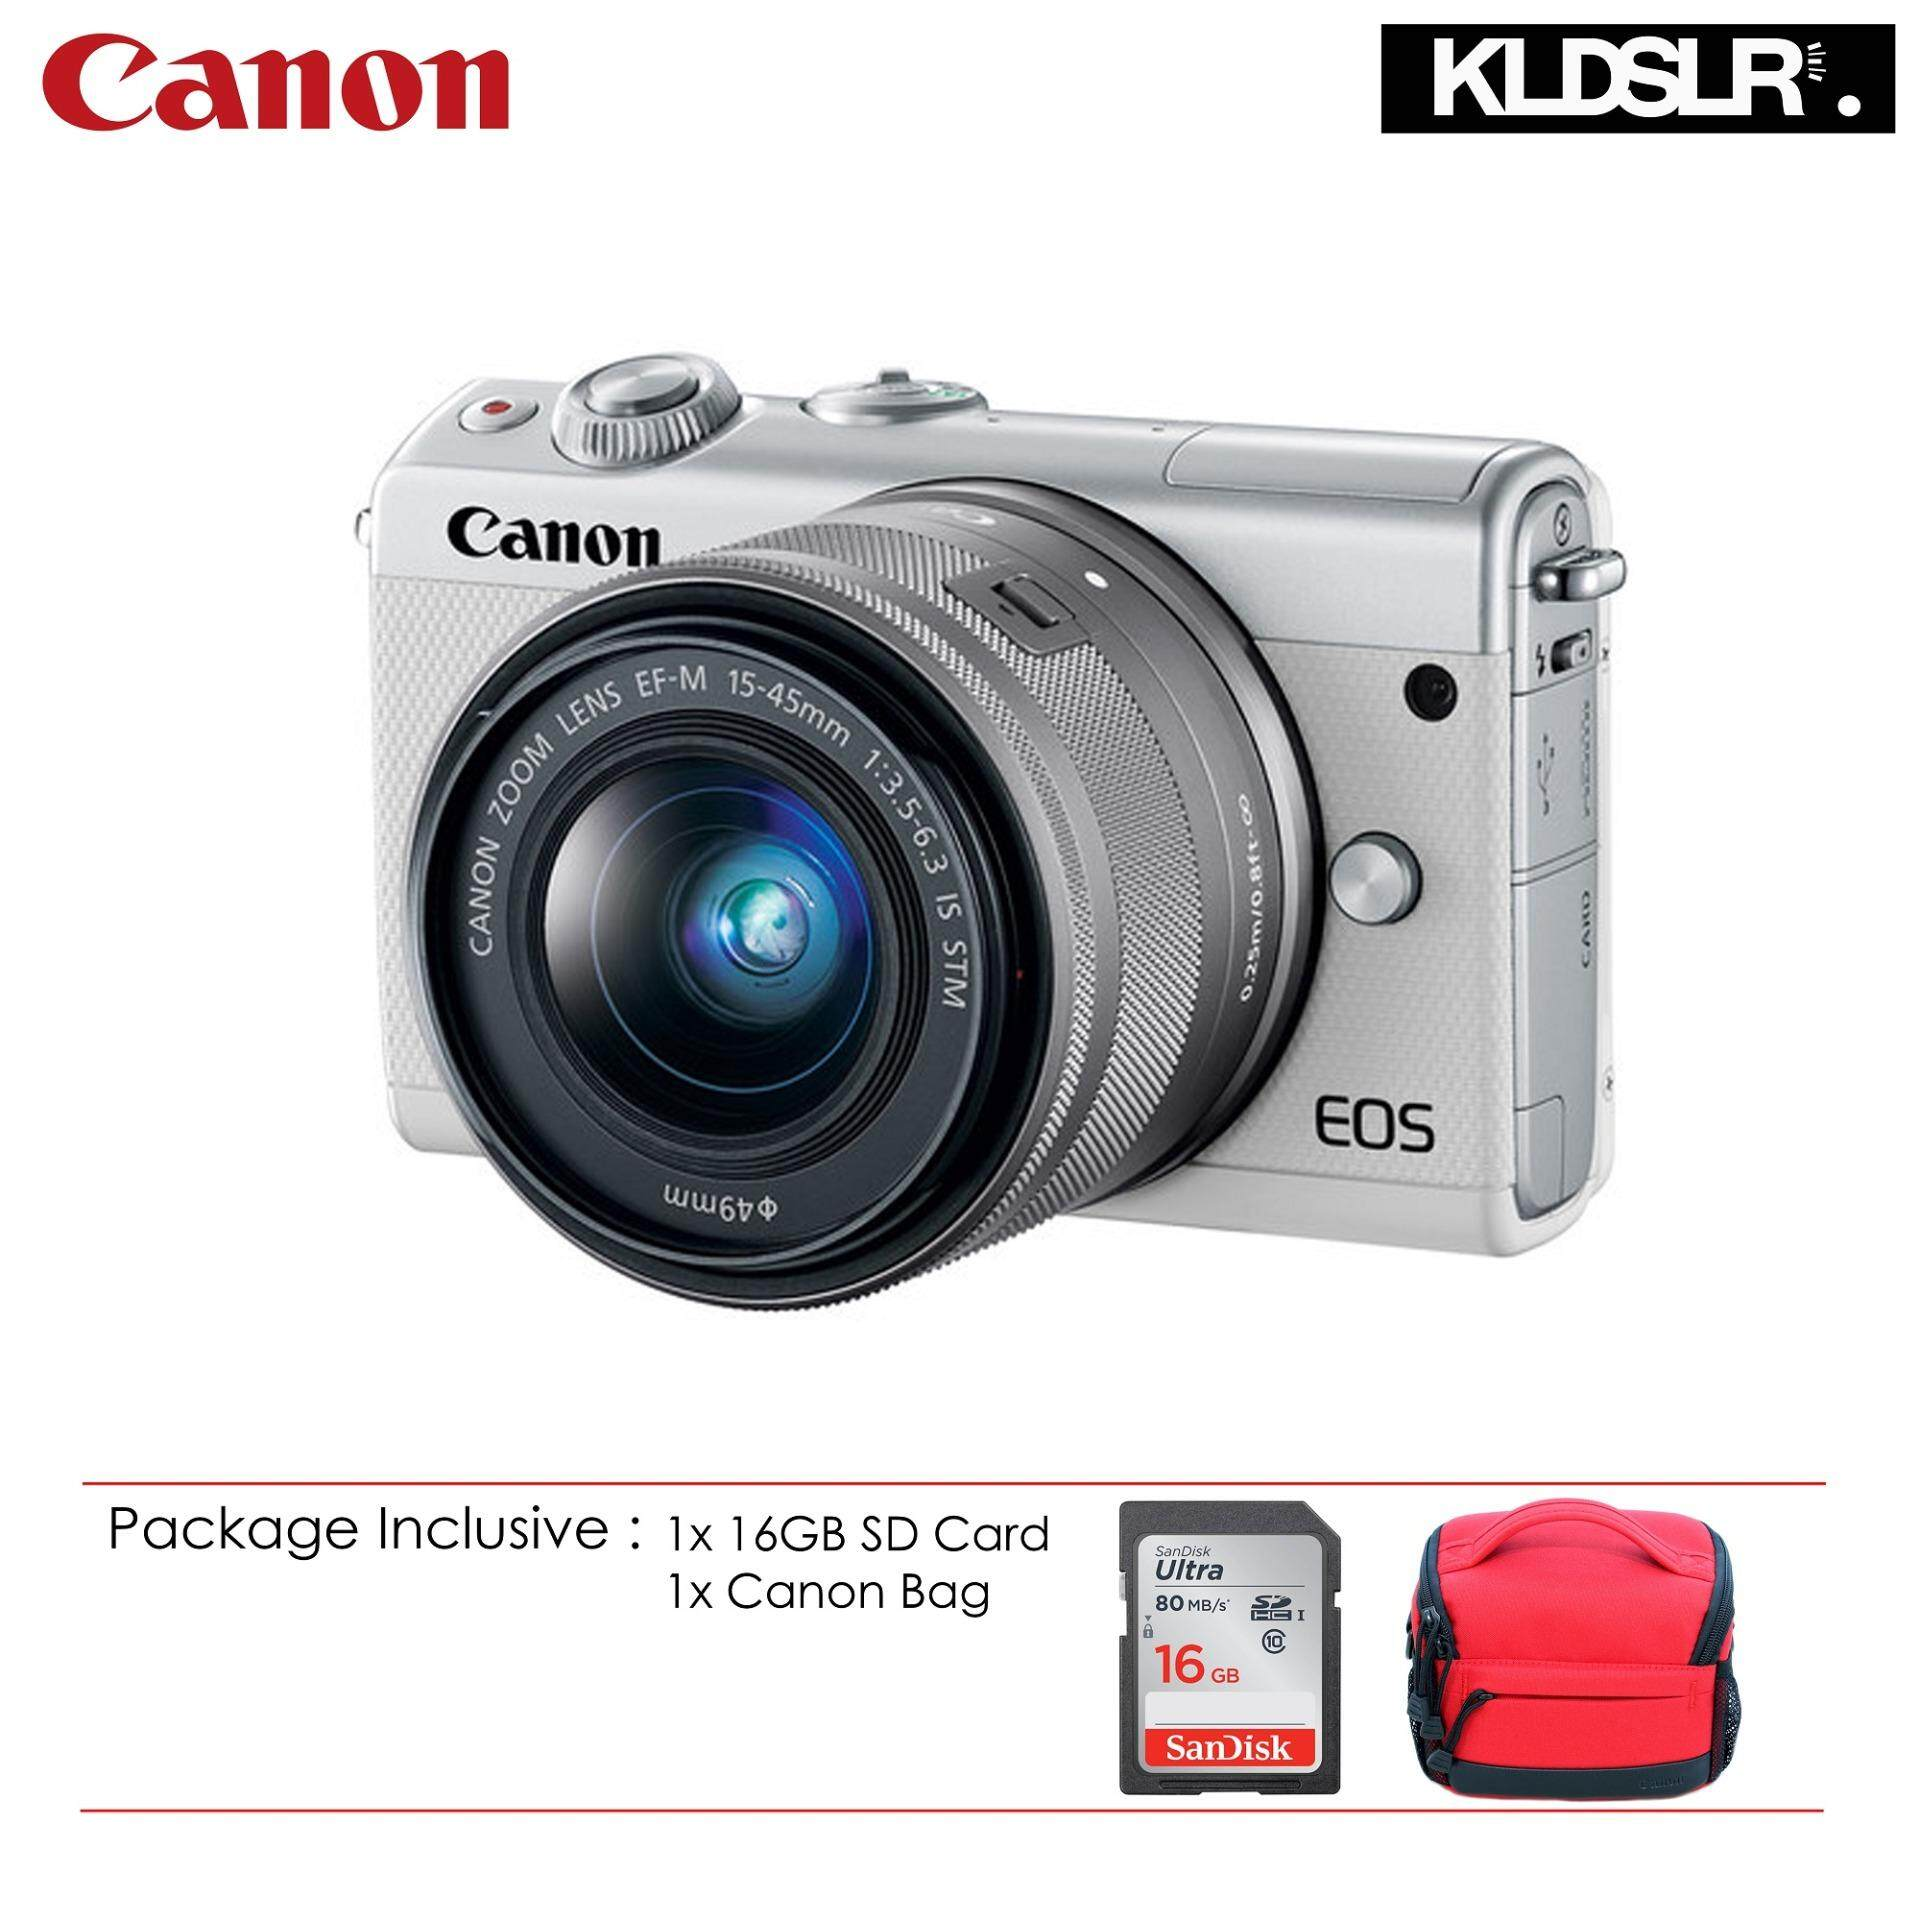 Sell Canon Camera Cheapest Best Quality My Store Ixus 185 20 Mp 8x Zoom Free Sdhc 16gb Case Tripod Myr 1475